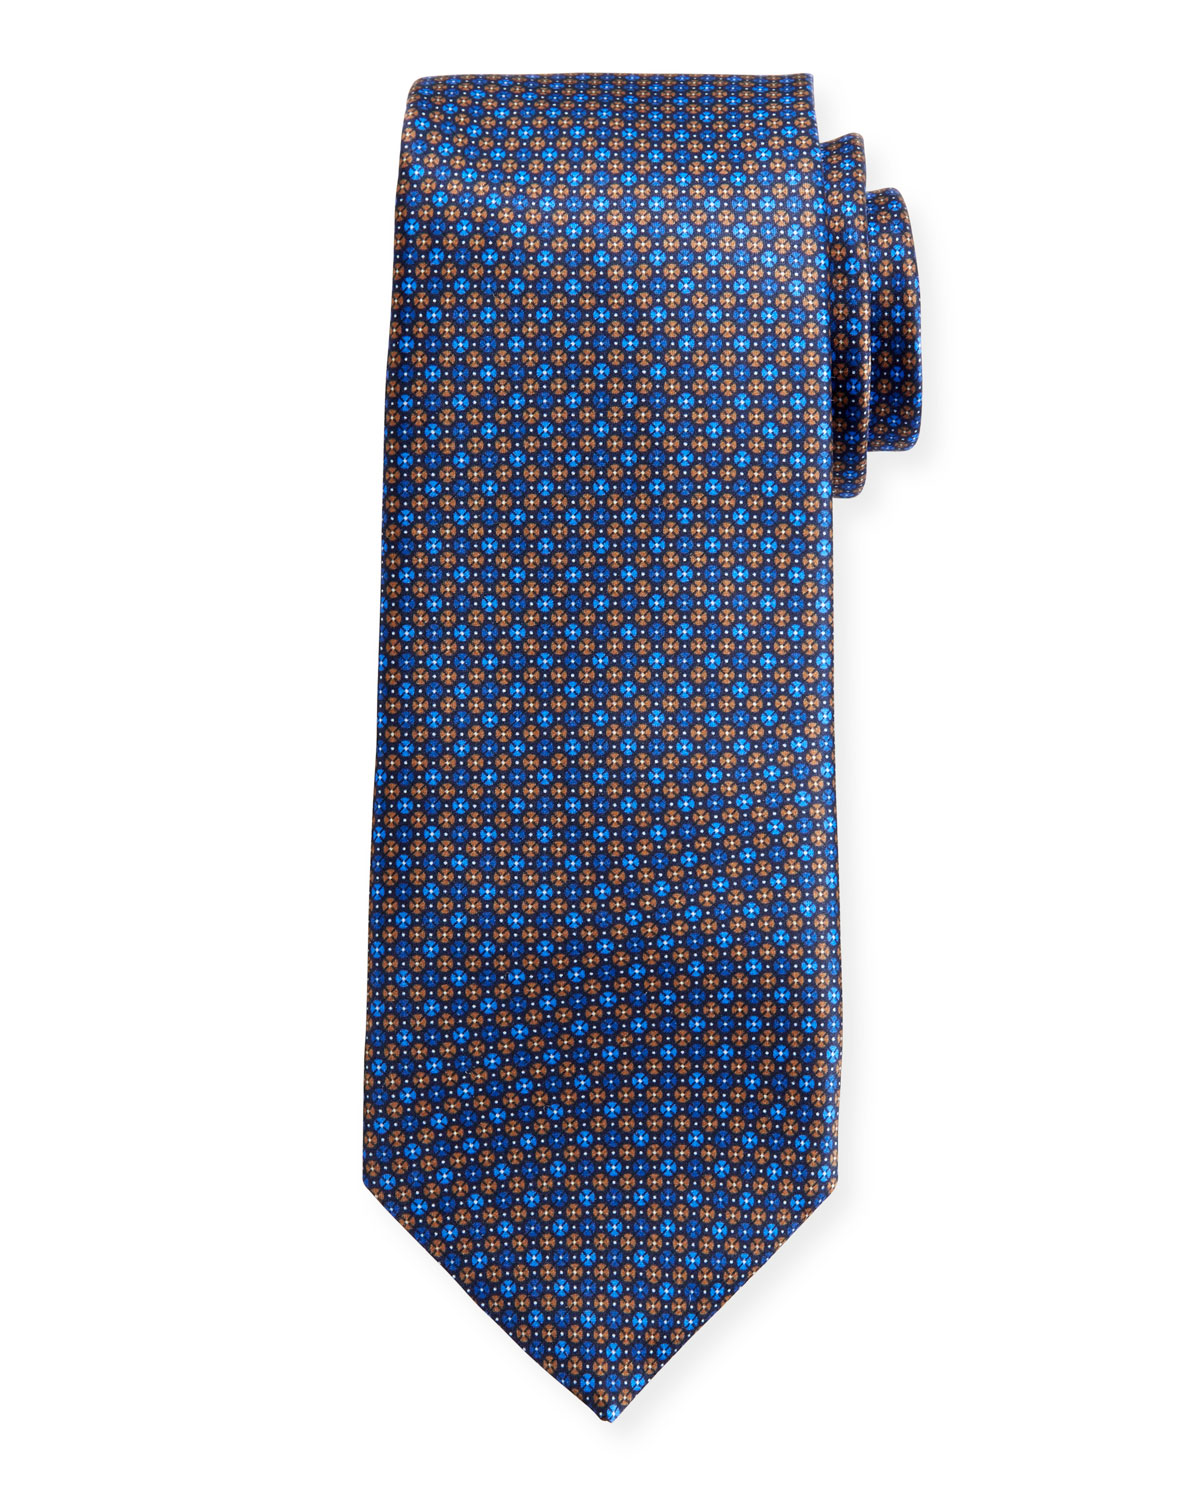 Canali Men's Sateen Printed Neat Silk Tie, Blue